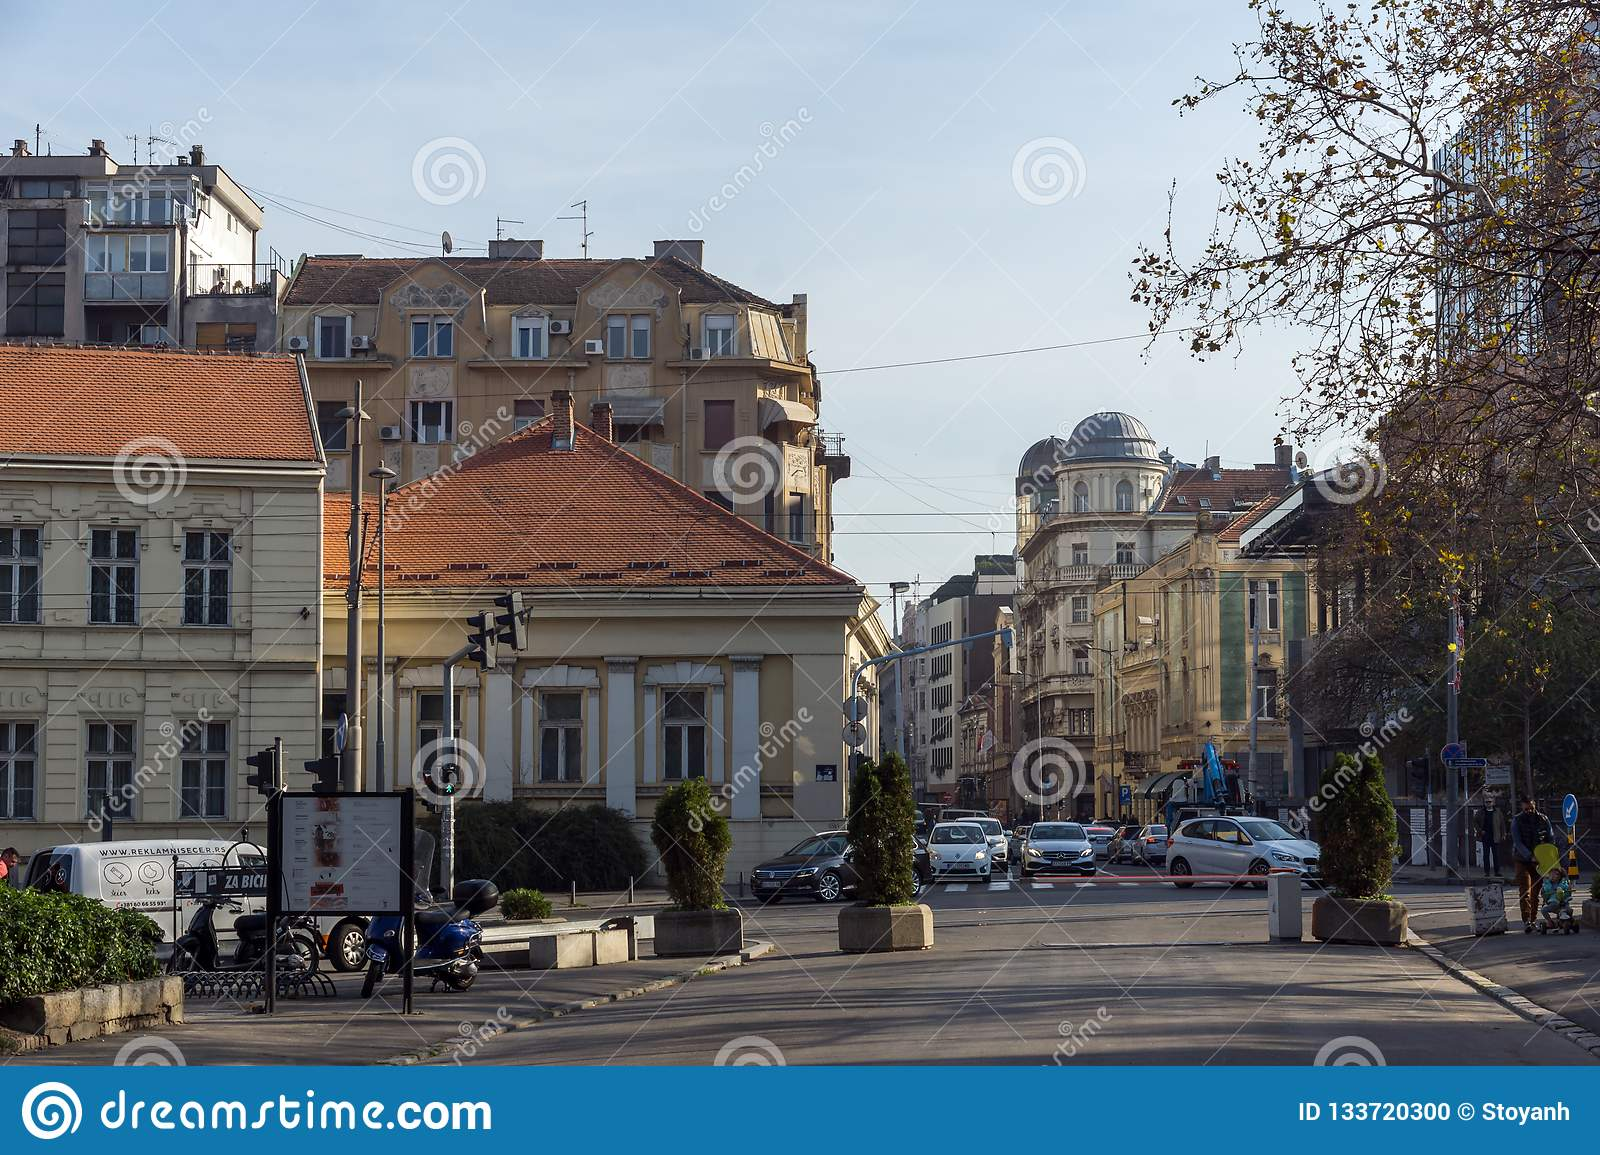 Typical Building in the center of city of Belgrade, Serbia